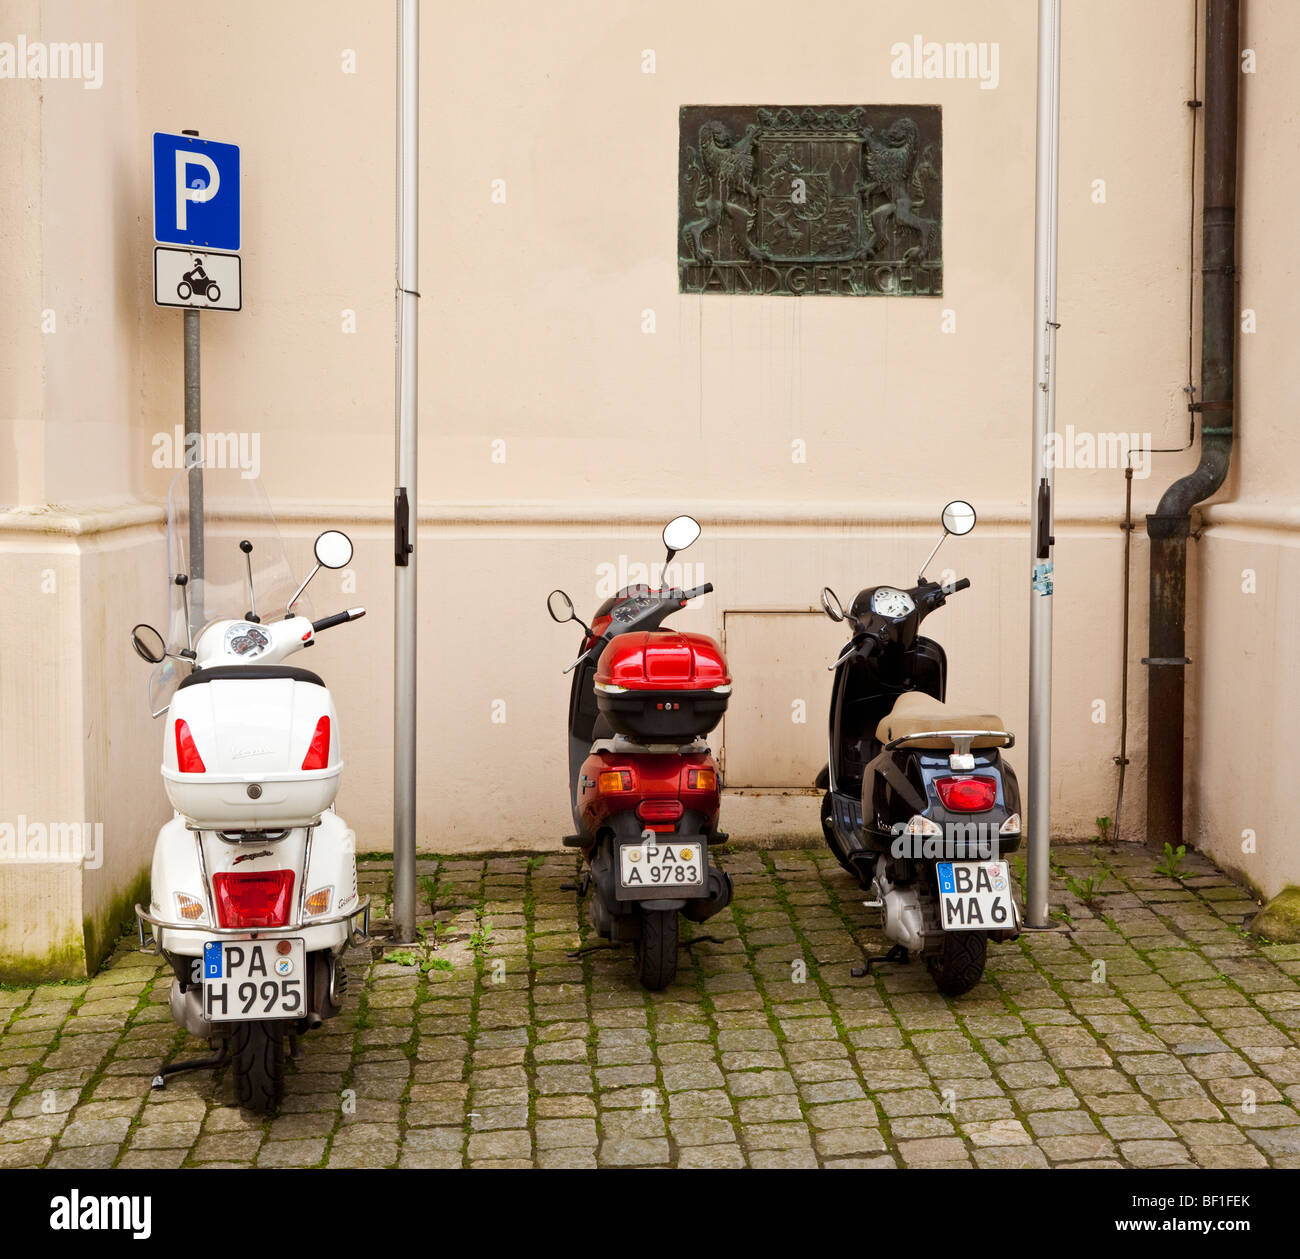 Three scooters parked in a scooter parking zone on an old street in Germany Europe - Stock Image